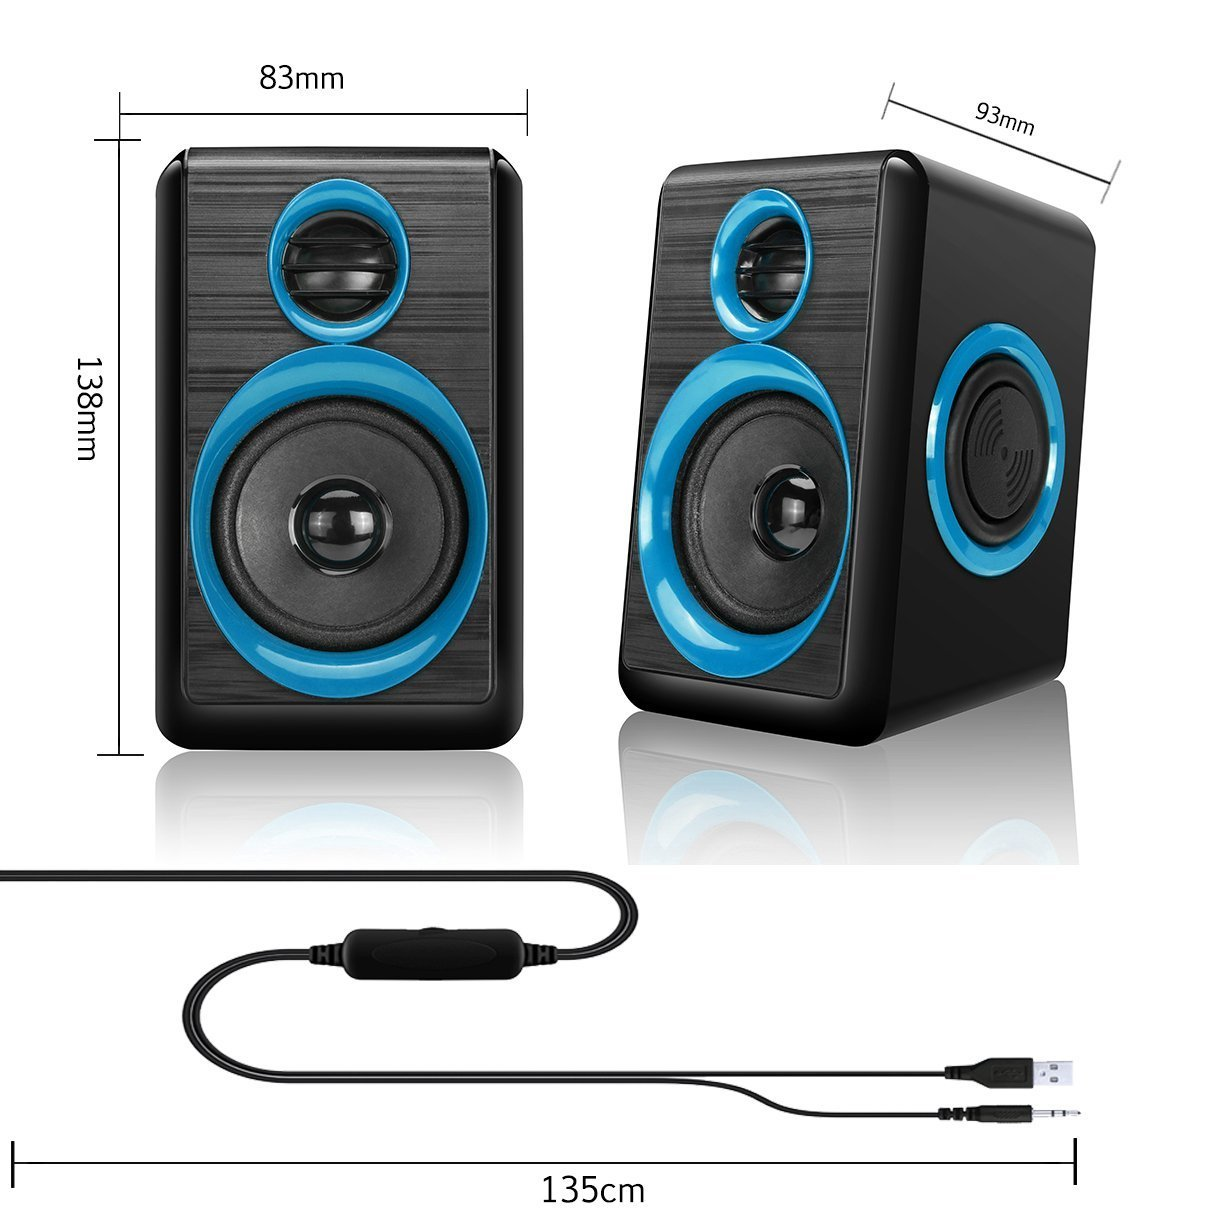 Computer Speakers,AIERSIQI USB Wired Powered Mulitimedia Speaker with Subwoofer Volume Control Built-in 4 Loudspeaker Diaphragm for PC/Laptop/Desktop by AIERSIQI (Image #4)